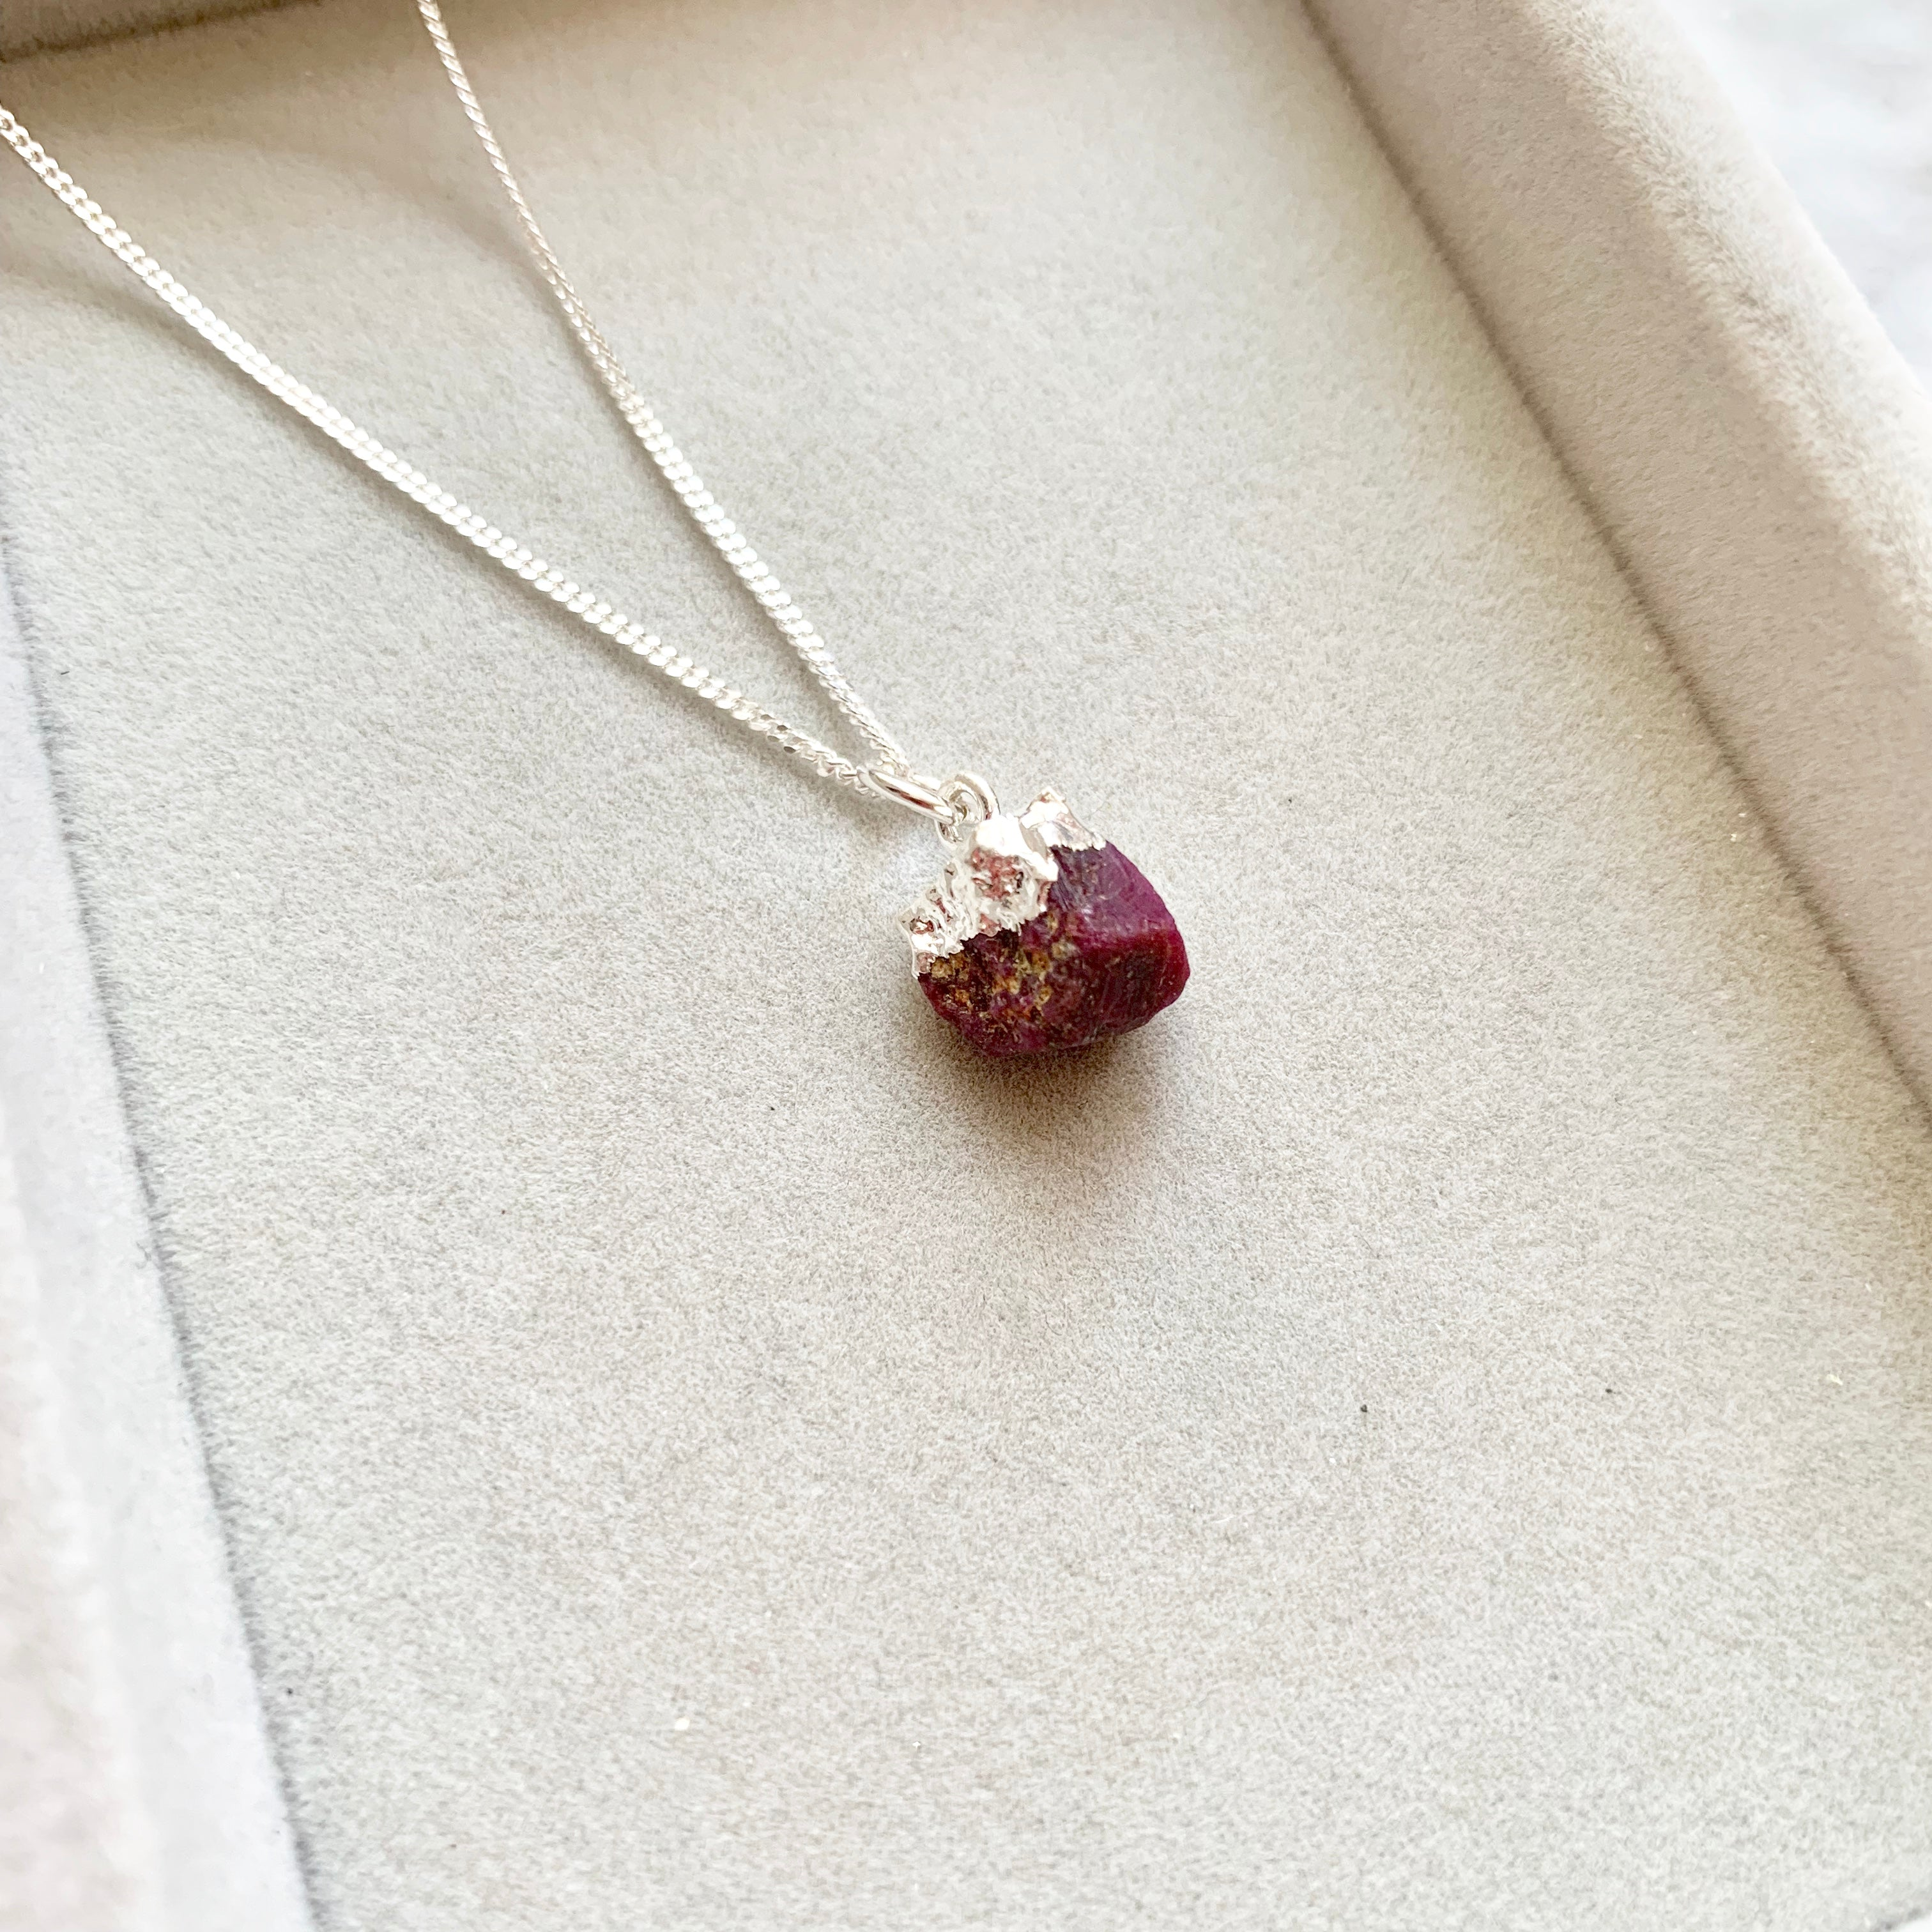 Birthstone Necklace - Sterling Silver - JULY, Ruby - Decadorn